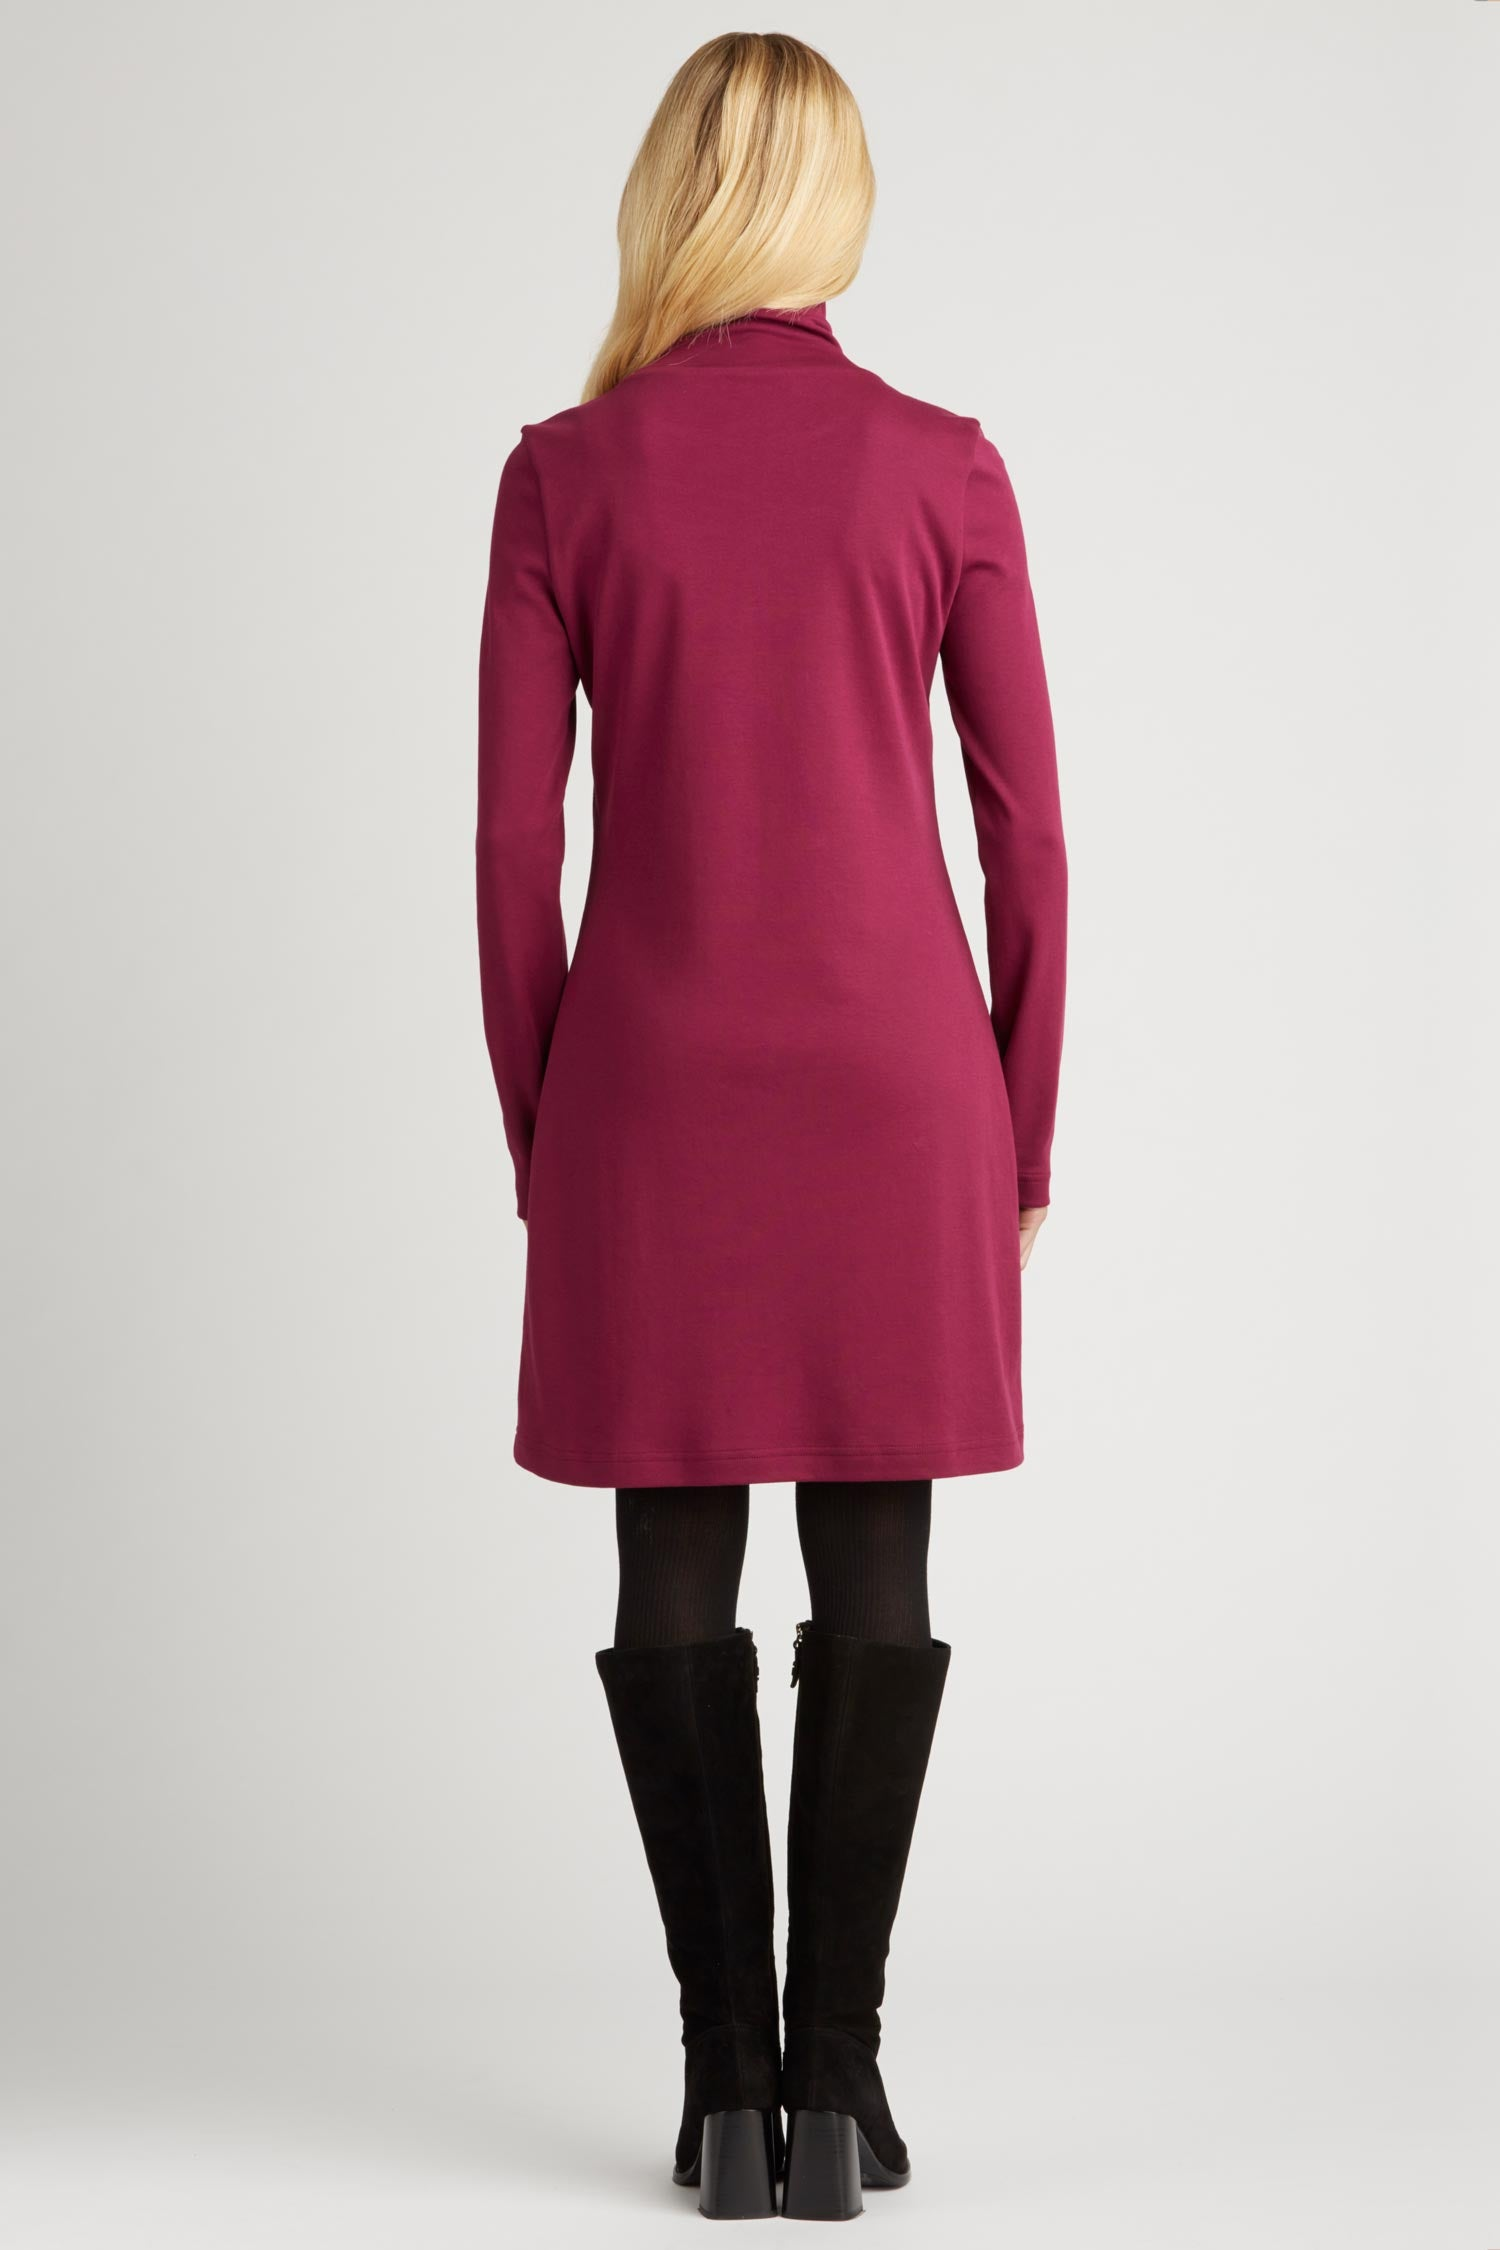 Womens Turtleneck Dress in Pink | Sustainable Fashion